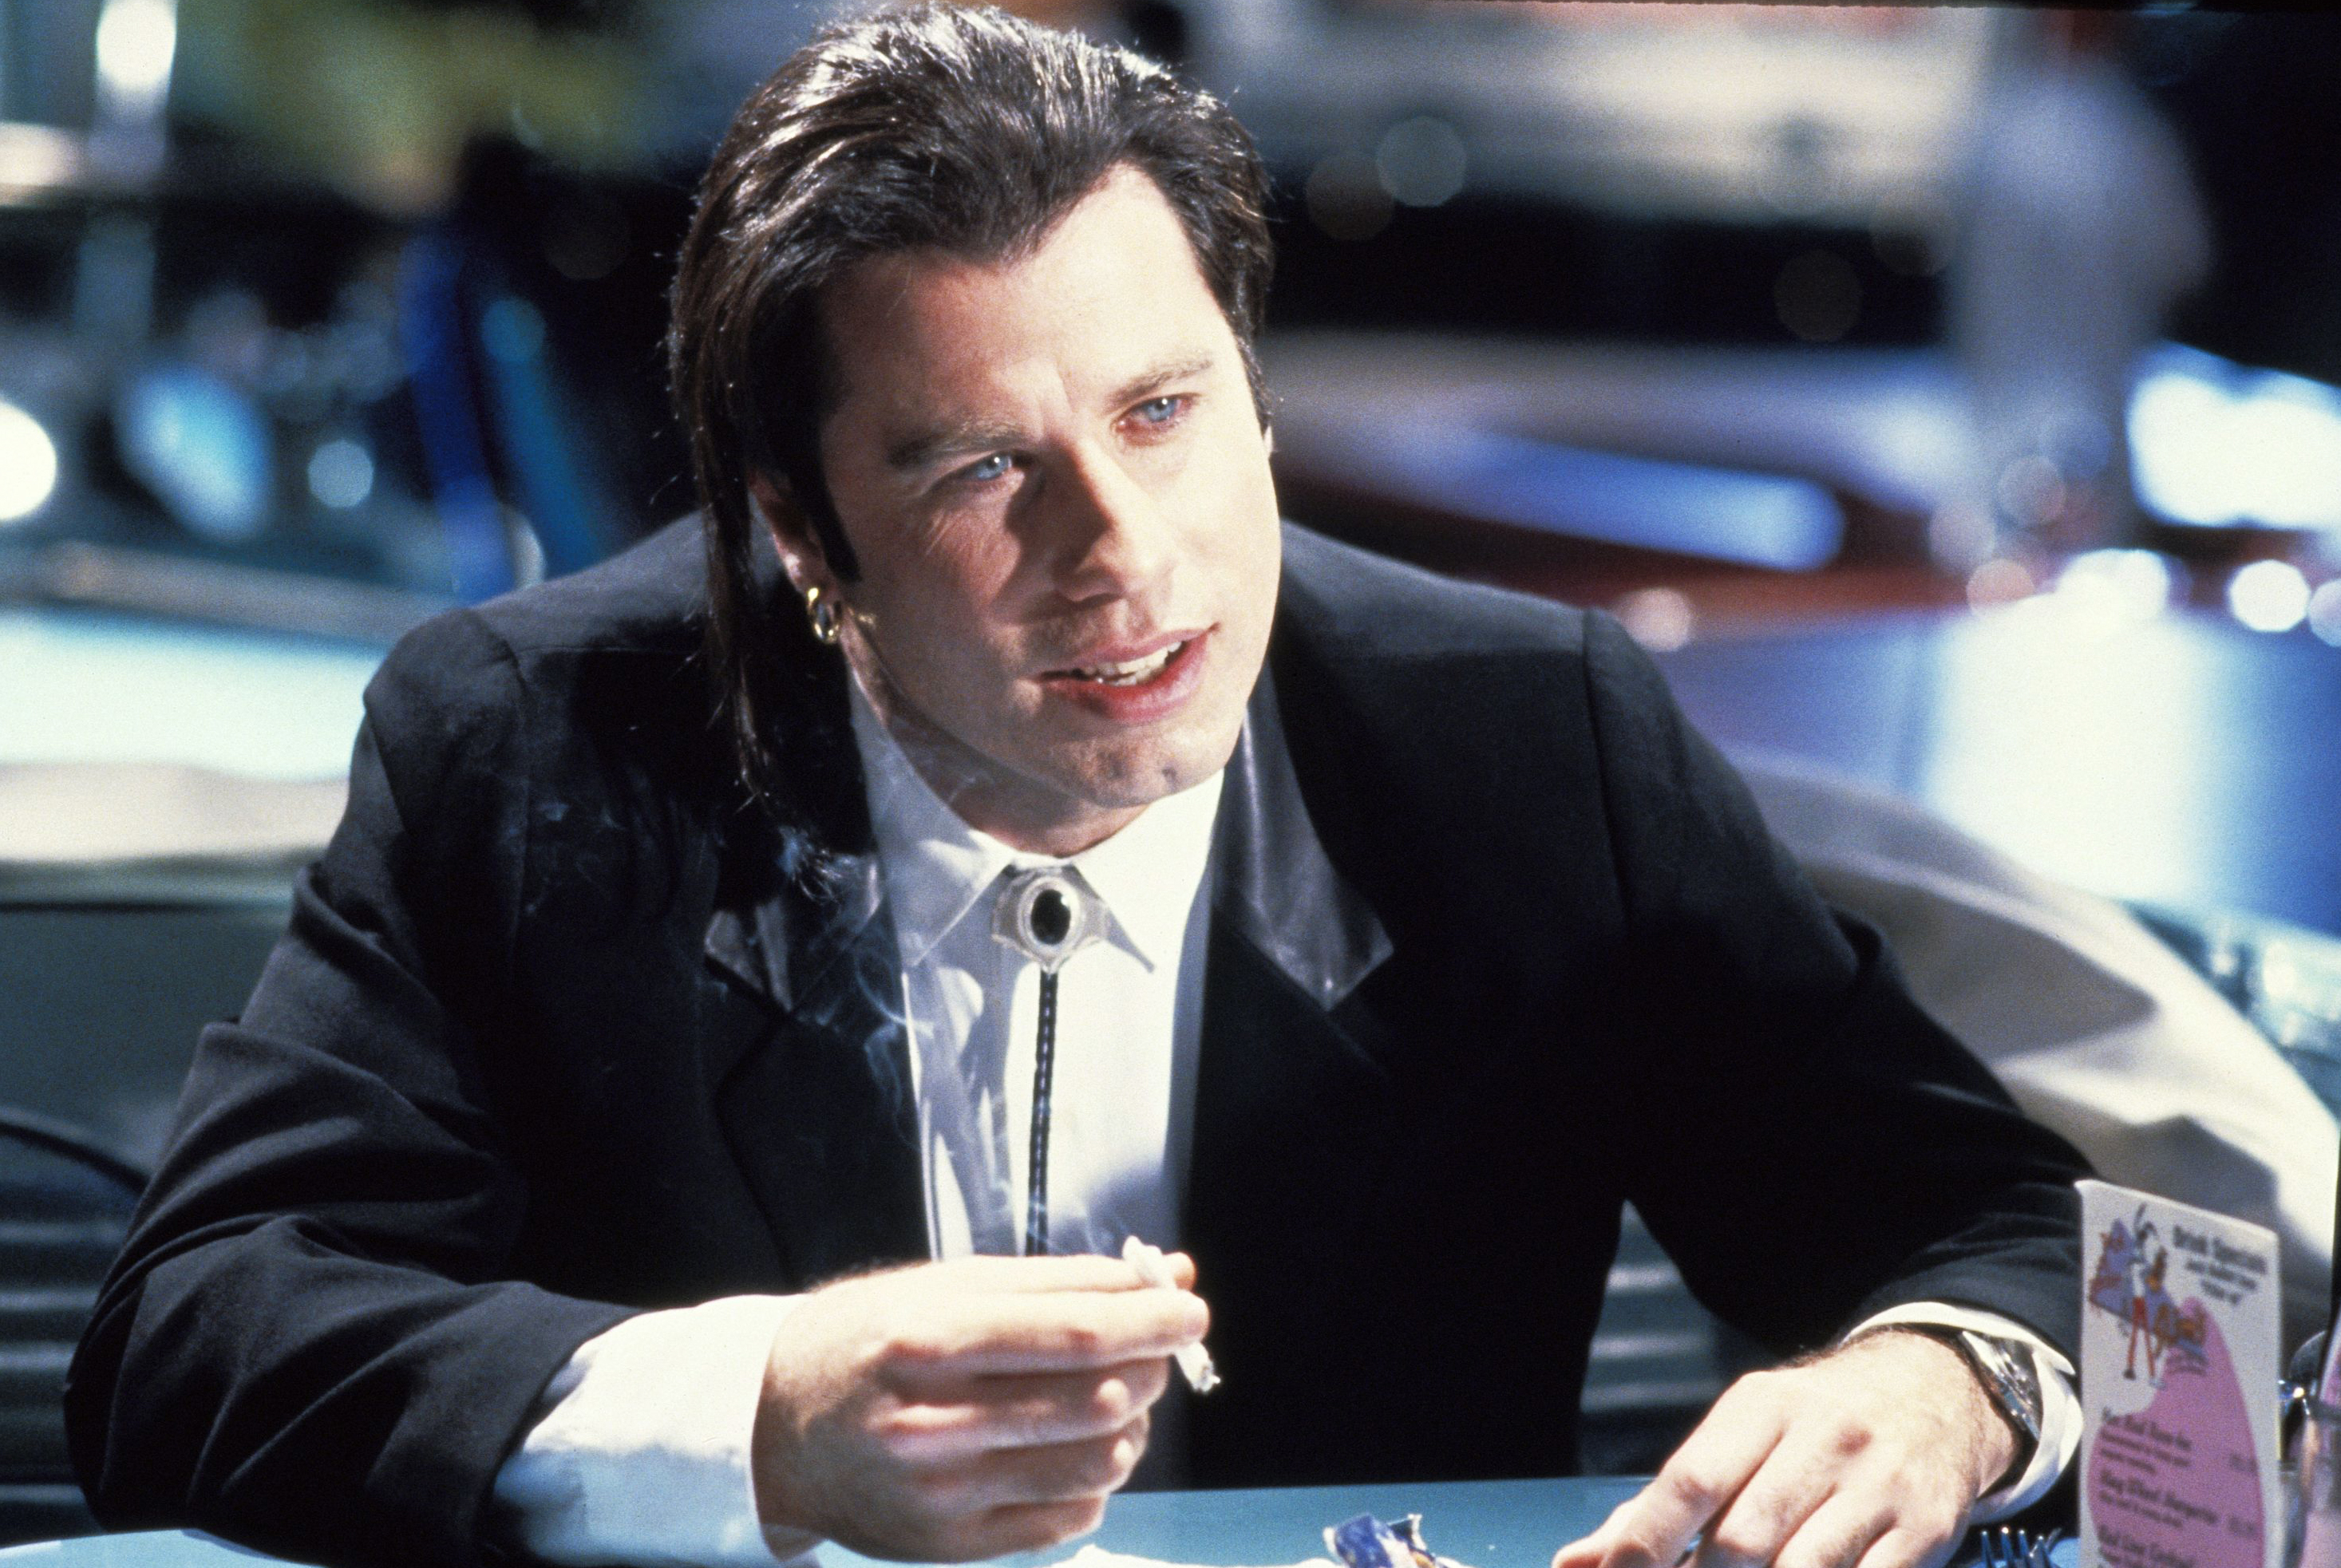 John Travolta as Vincent Vega in Pulp Fiction, 1994.